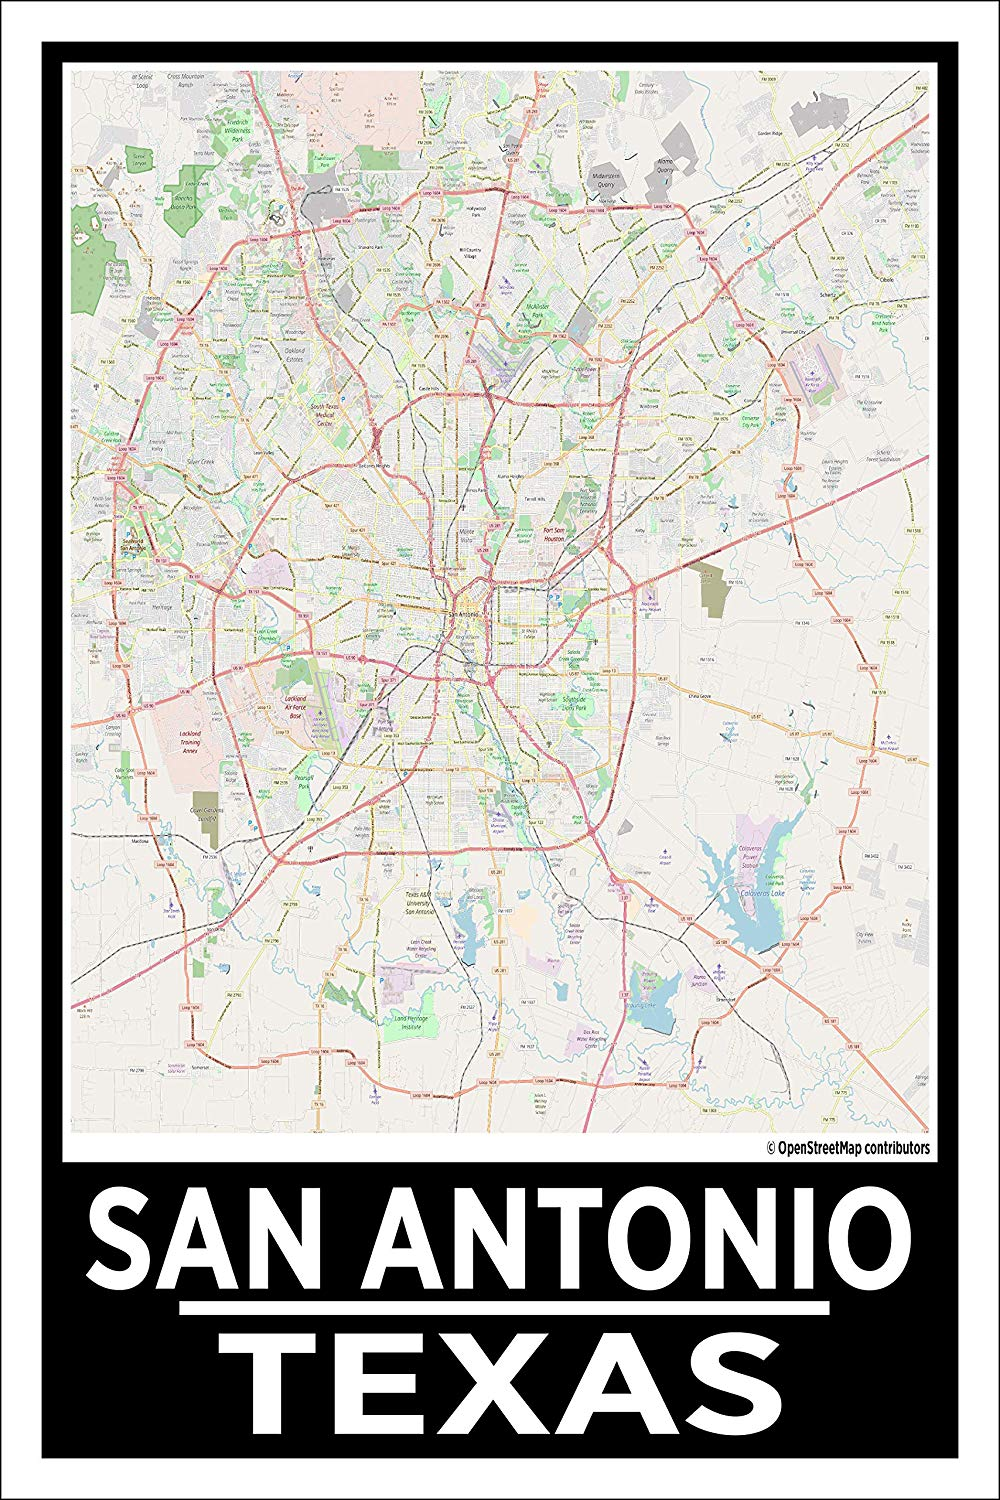 "Spitzy's San Antonio Texas Map Poster - Home Wall Art for Your Bedroom or Home Office - Map of San Antonio, City Map Poster (12"" x 18"" Dimensions Include a White .5"" Border)"